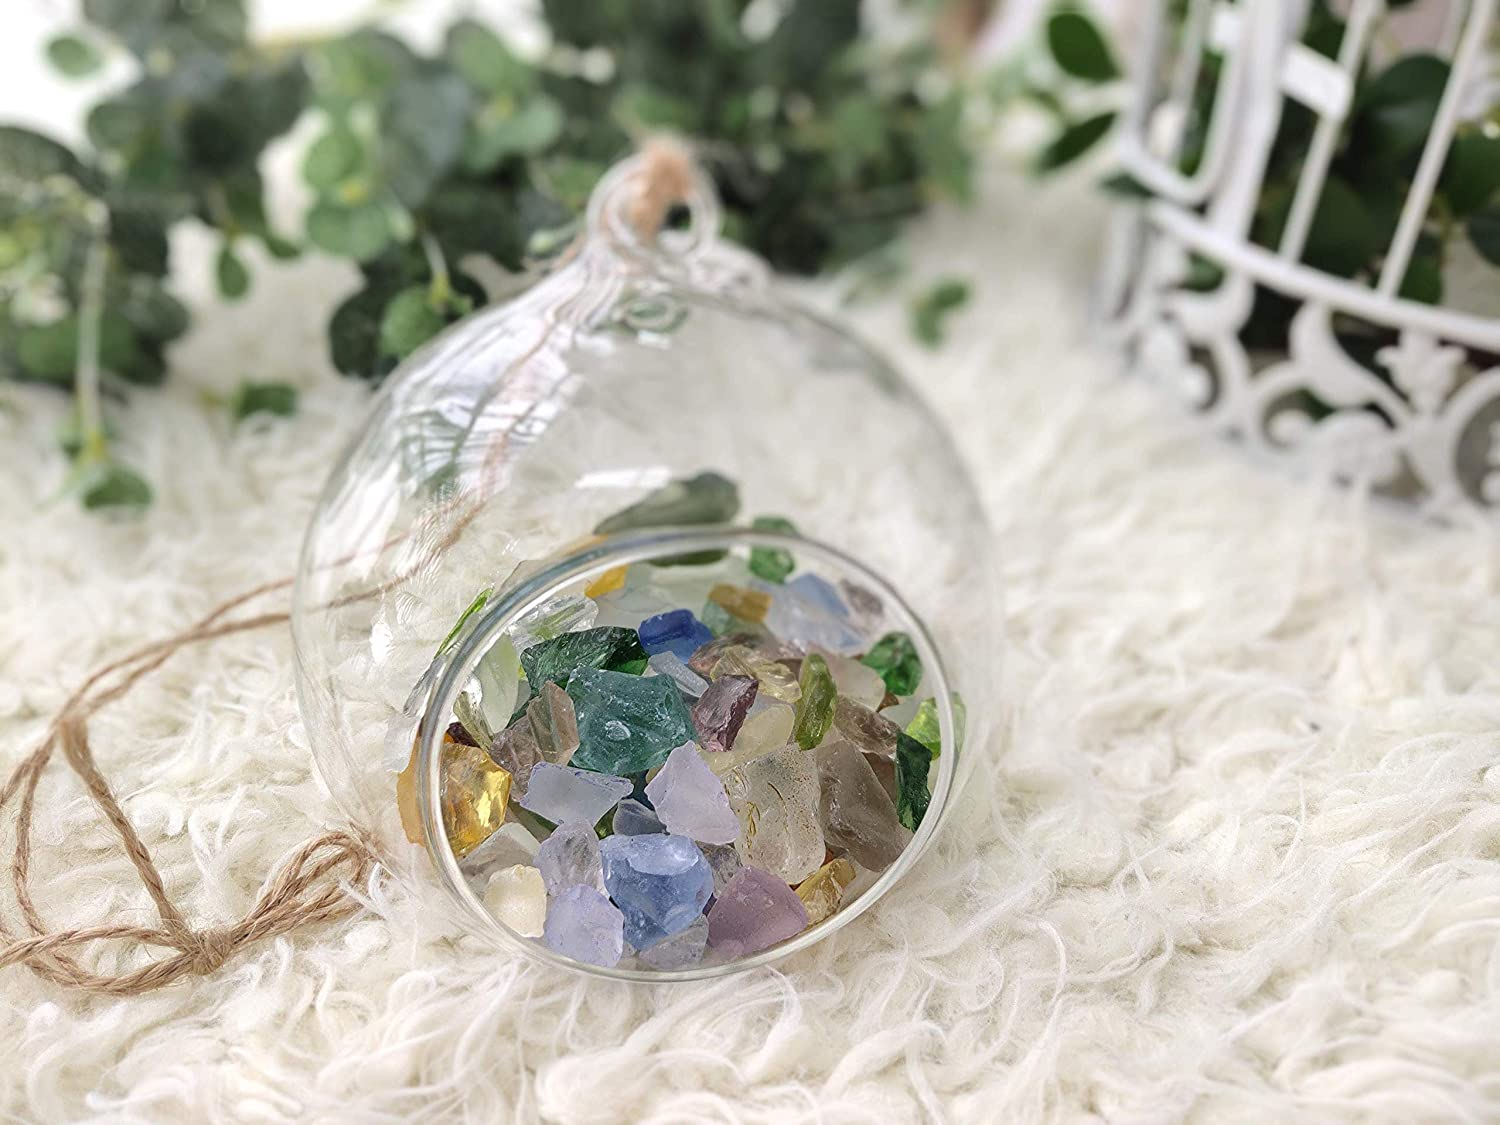 Nothing But Glass Set of 3 Hanging Air Tealight Home D/écor Holder Orbs//Succulent Plant Holder-Terrarium Planter with Color Stones Included 3.15 x 3.15